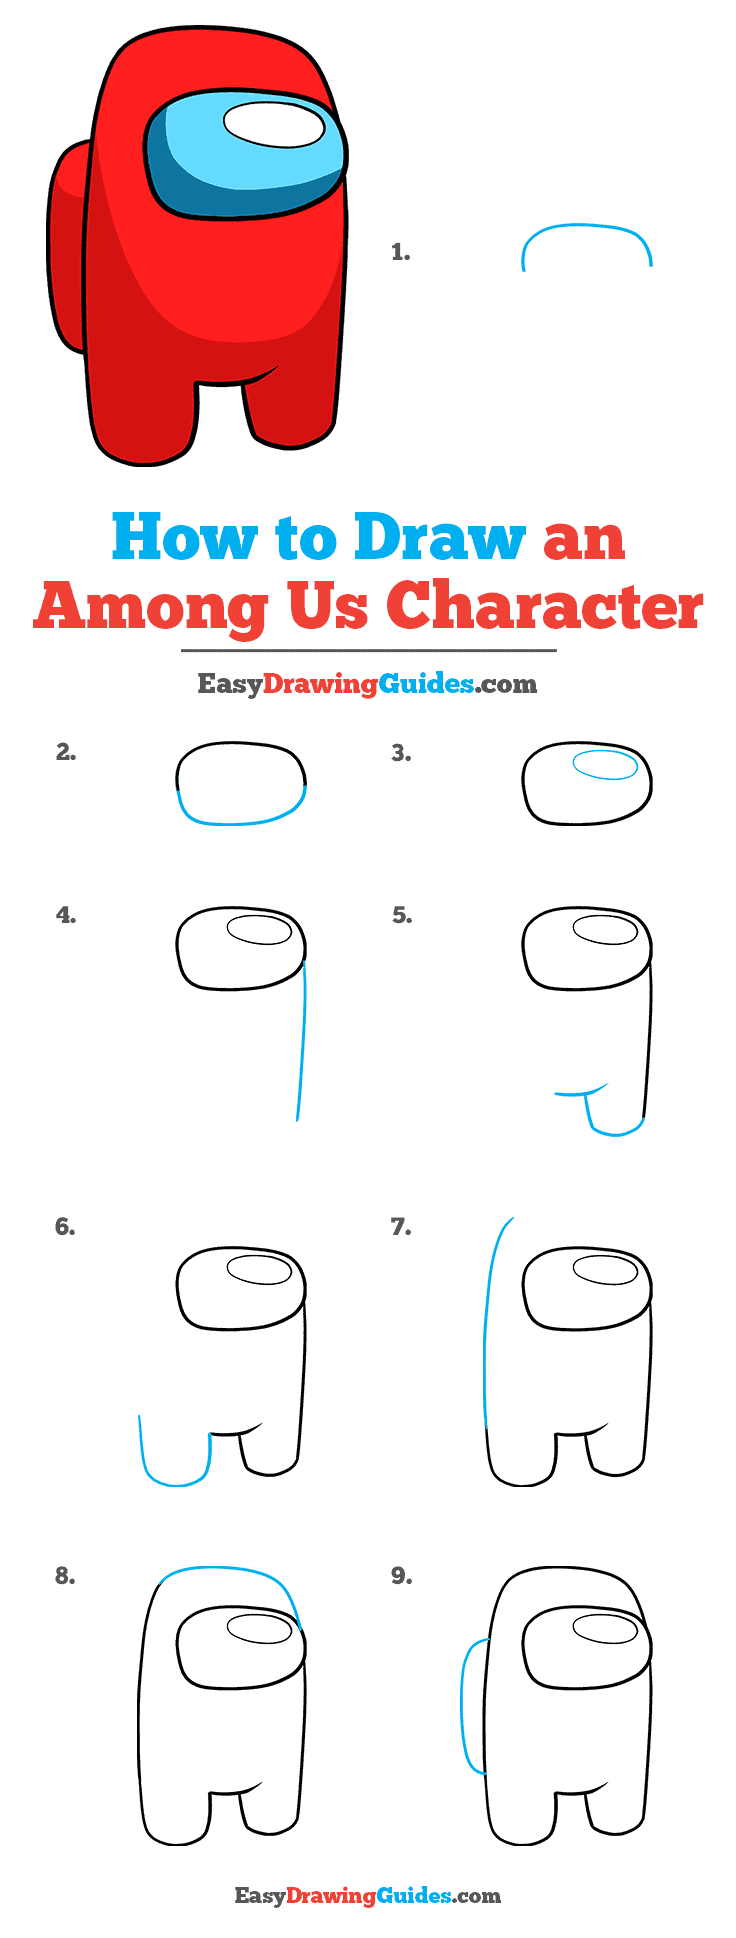 How to Draw an Among Us Character Step by Step Tutorial Image